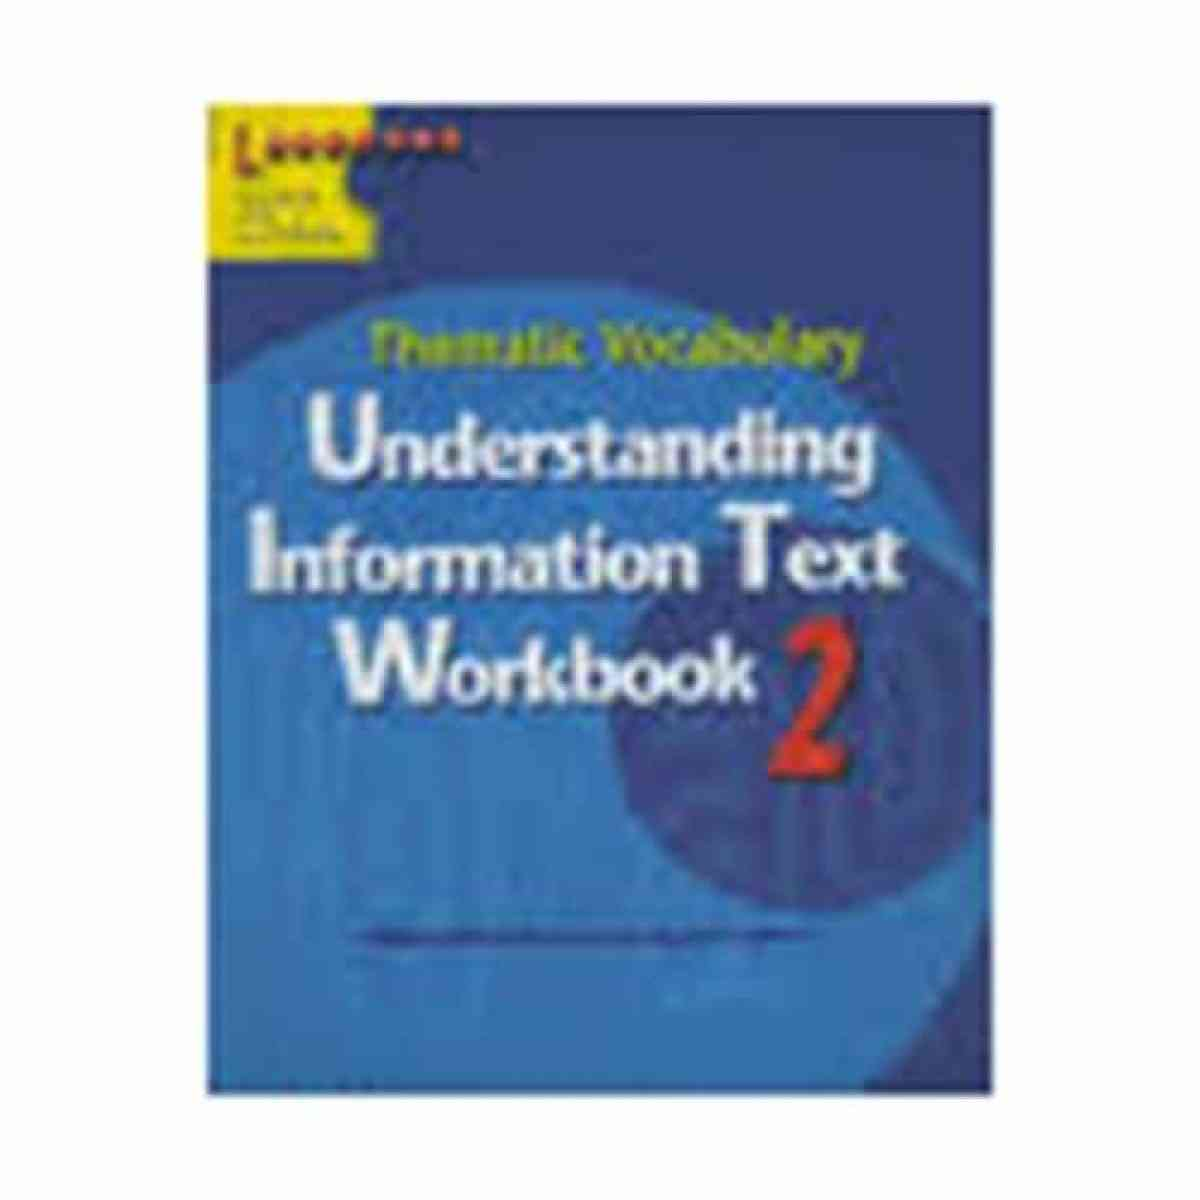 Understanding Information Text Workbook 2